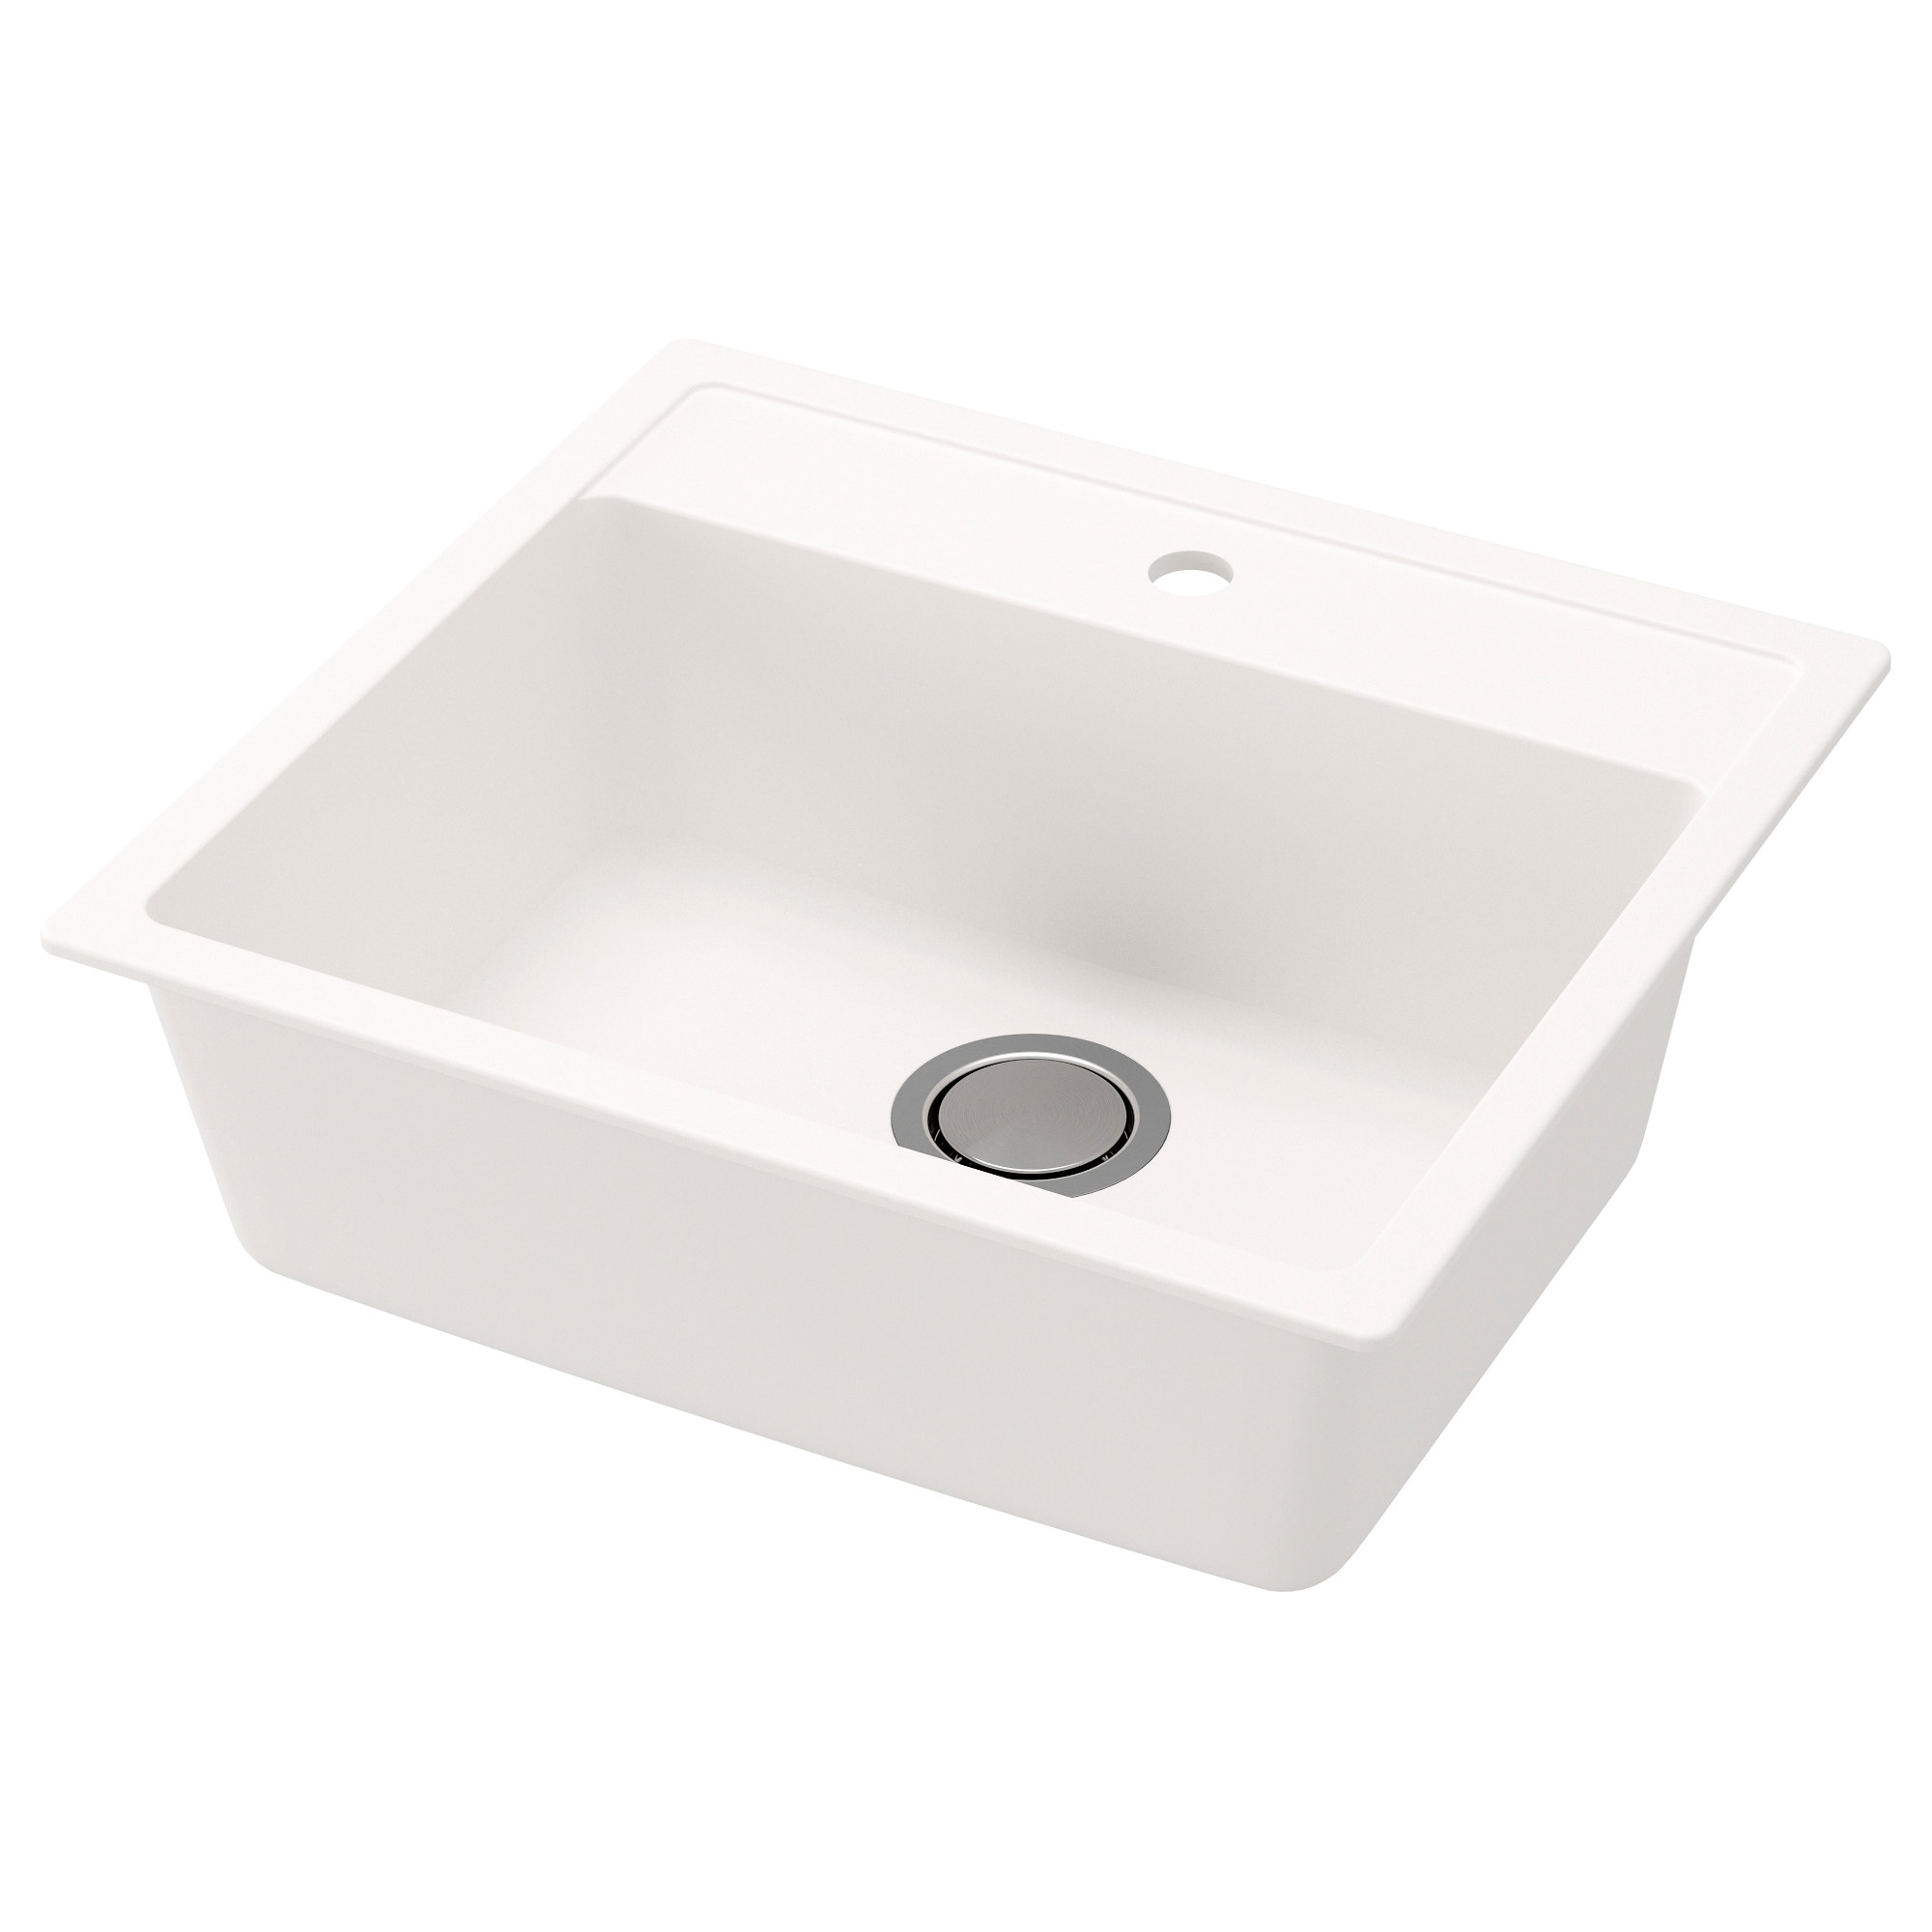 Farmhouse Kitchen Sinks Ikea kitchen sinks & kitchen faucets - ikea